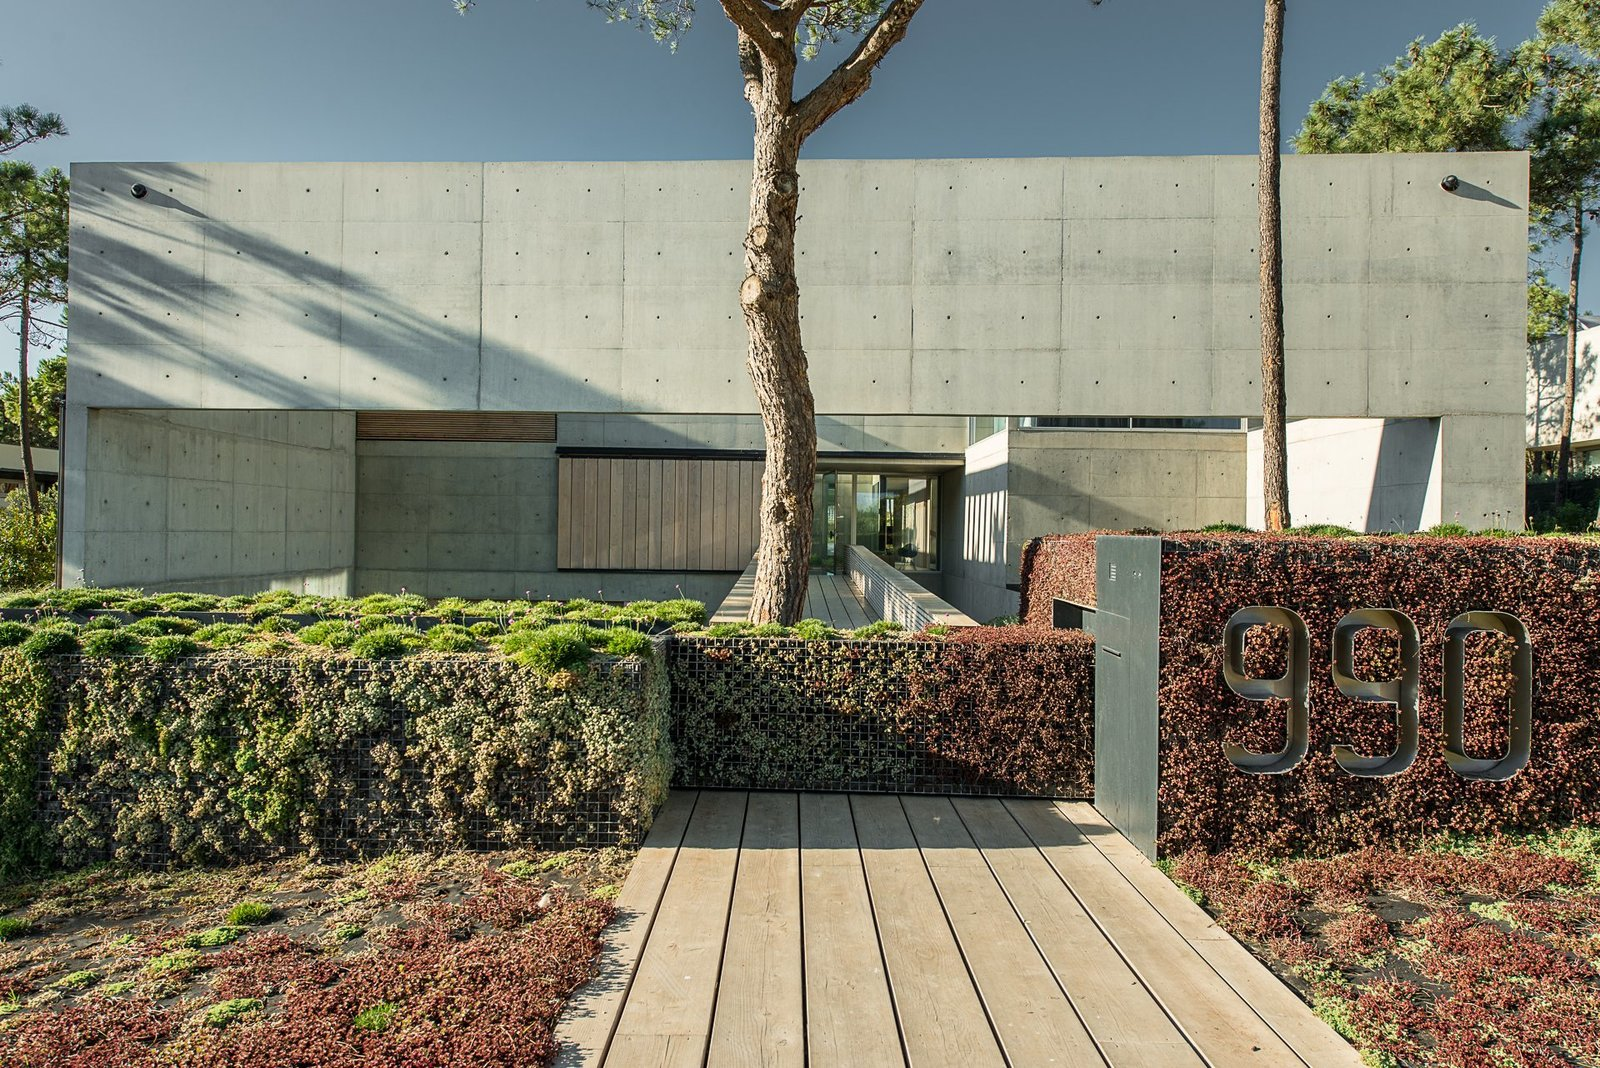 The Wall House entrance with garden walls and large metal street numbers.